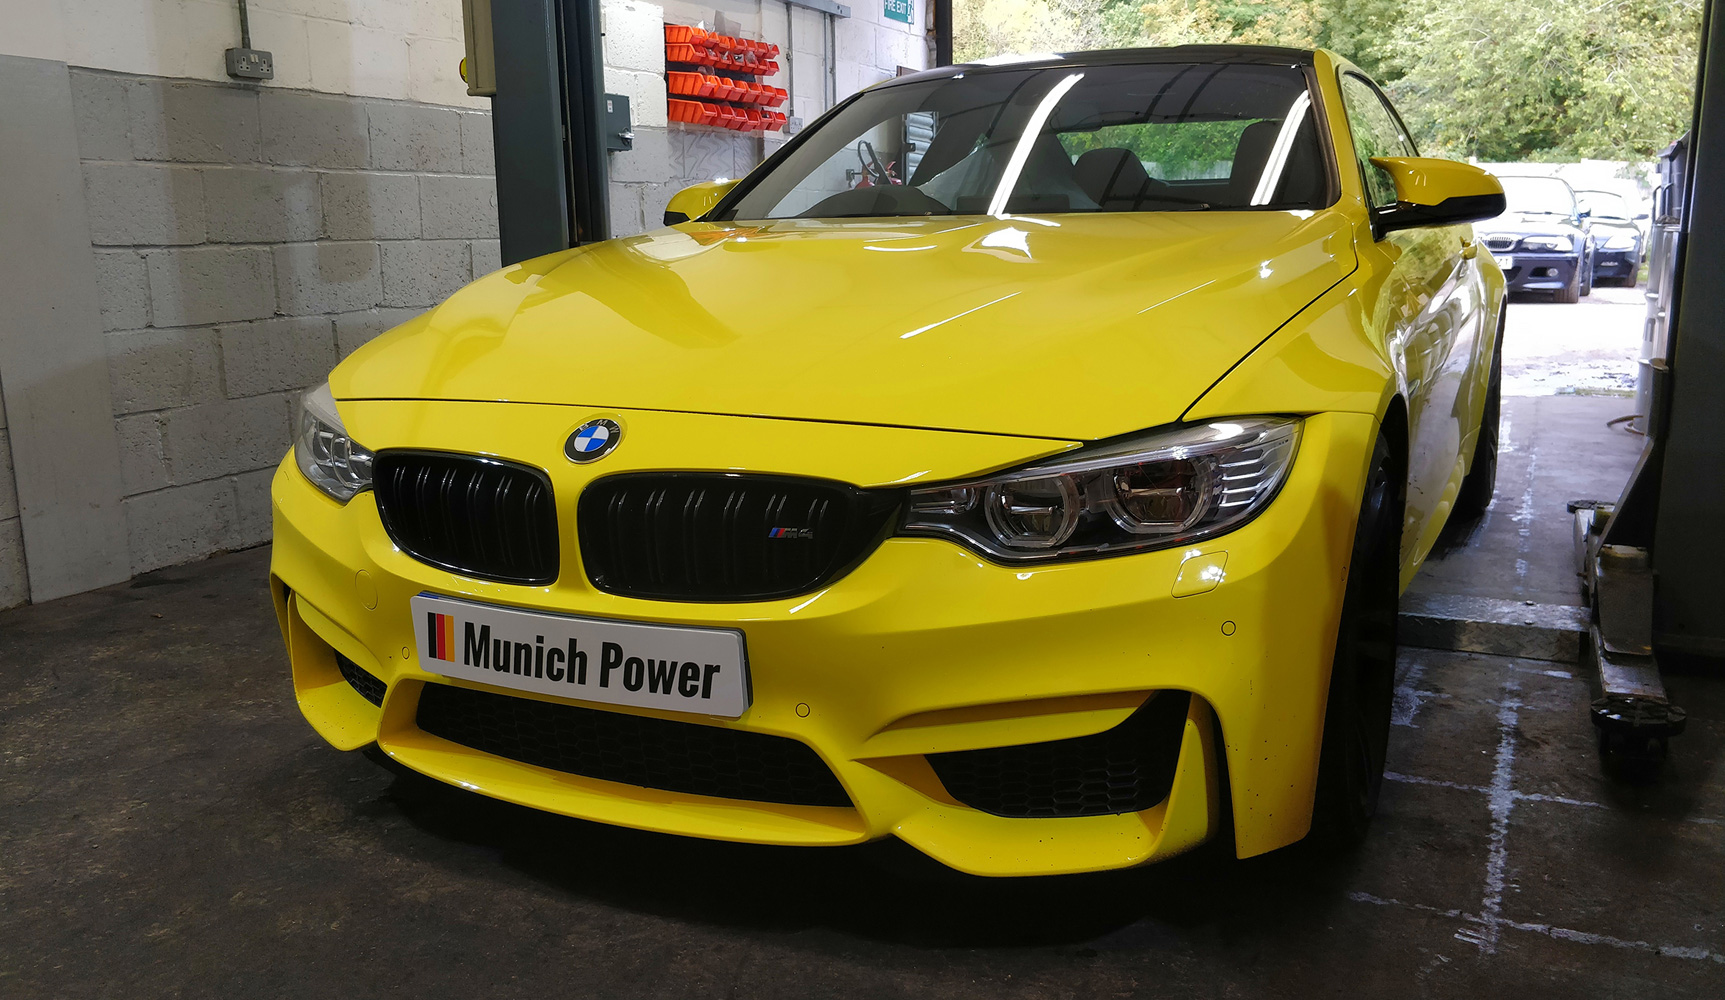 Munich Power is an independent and specialist BMW and MINI Workshop